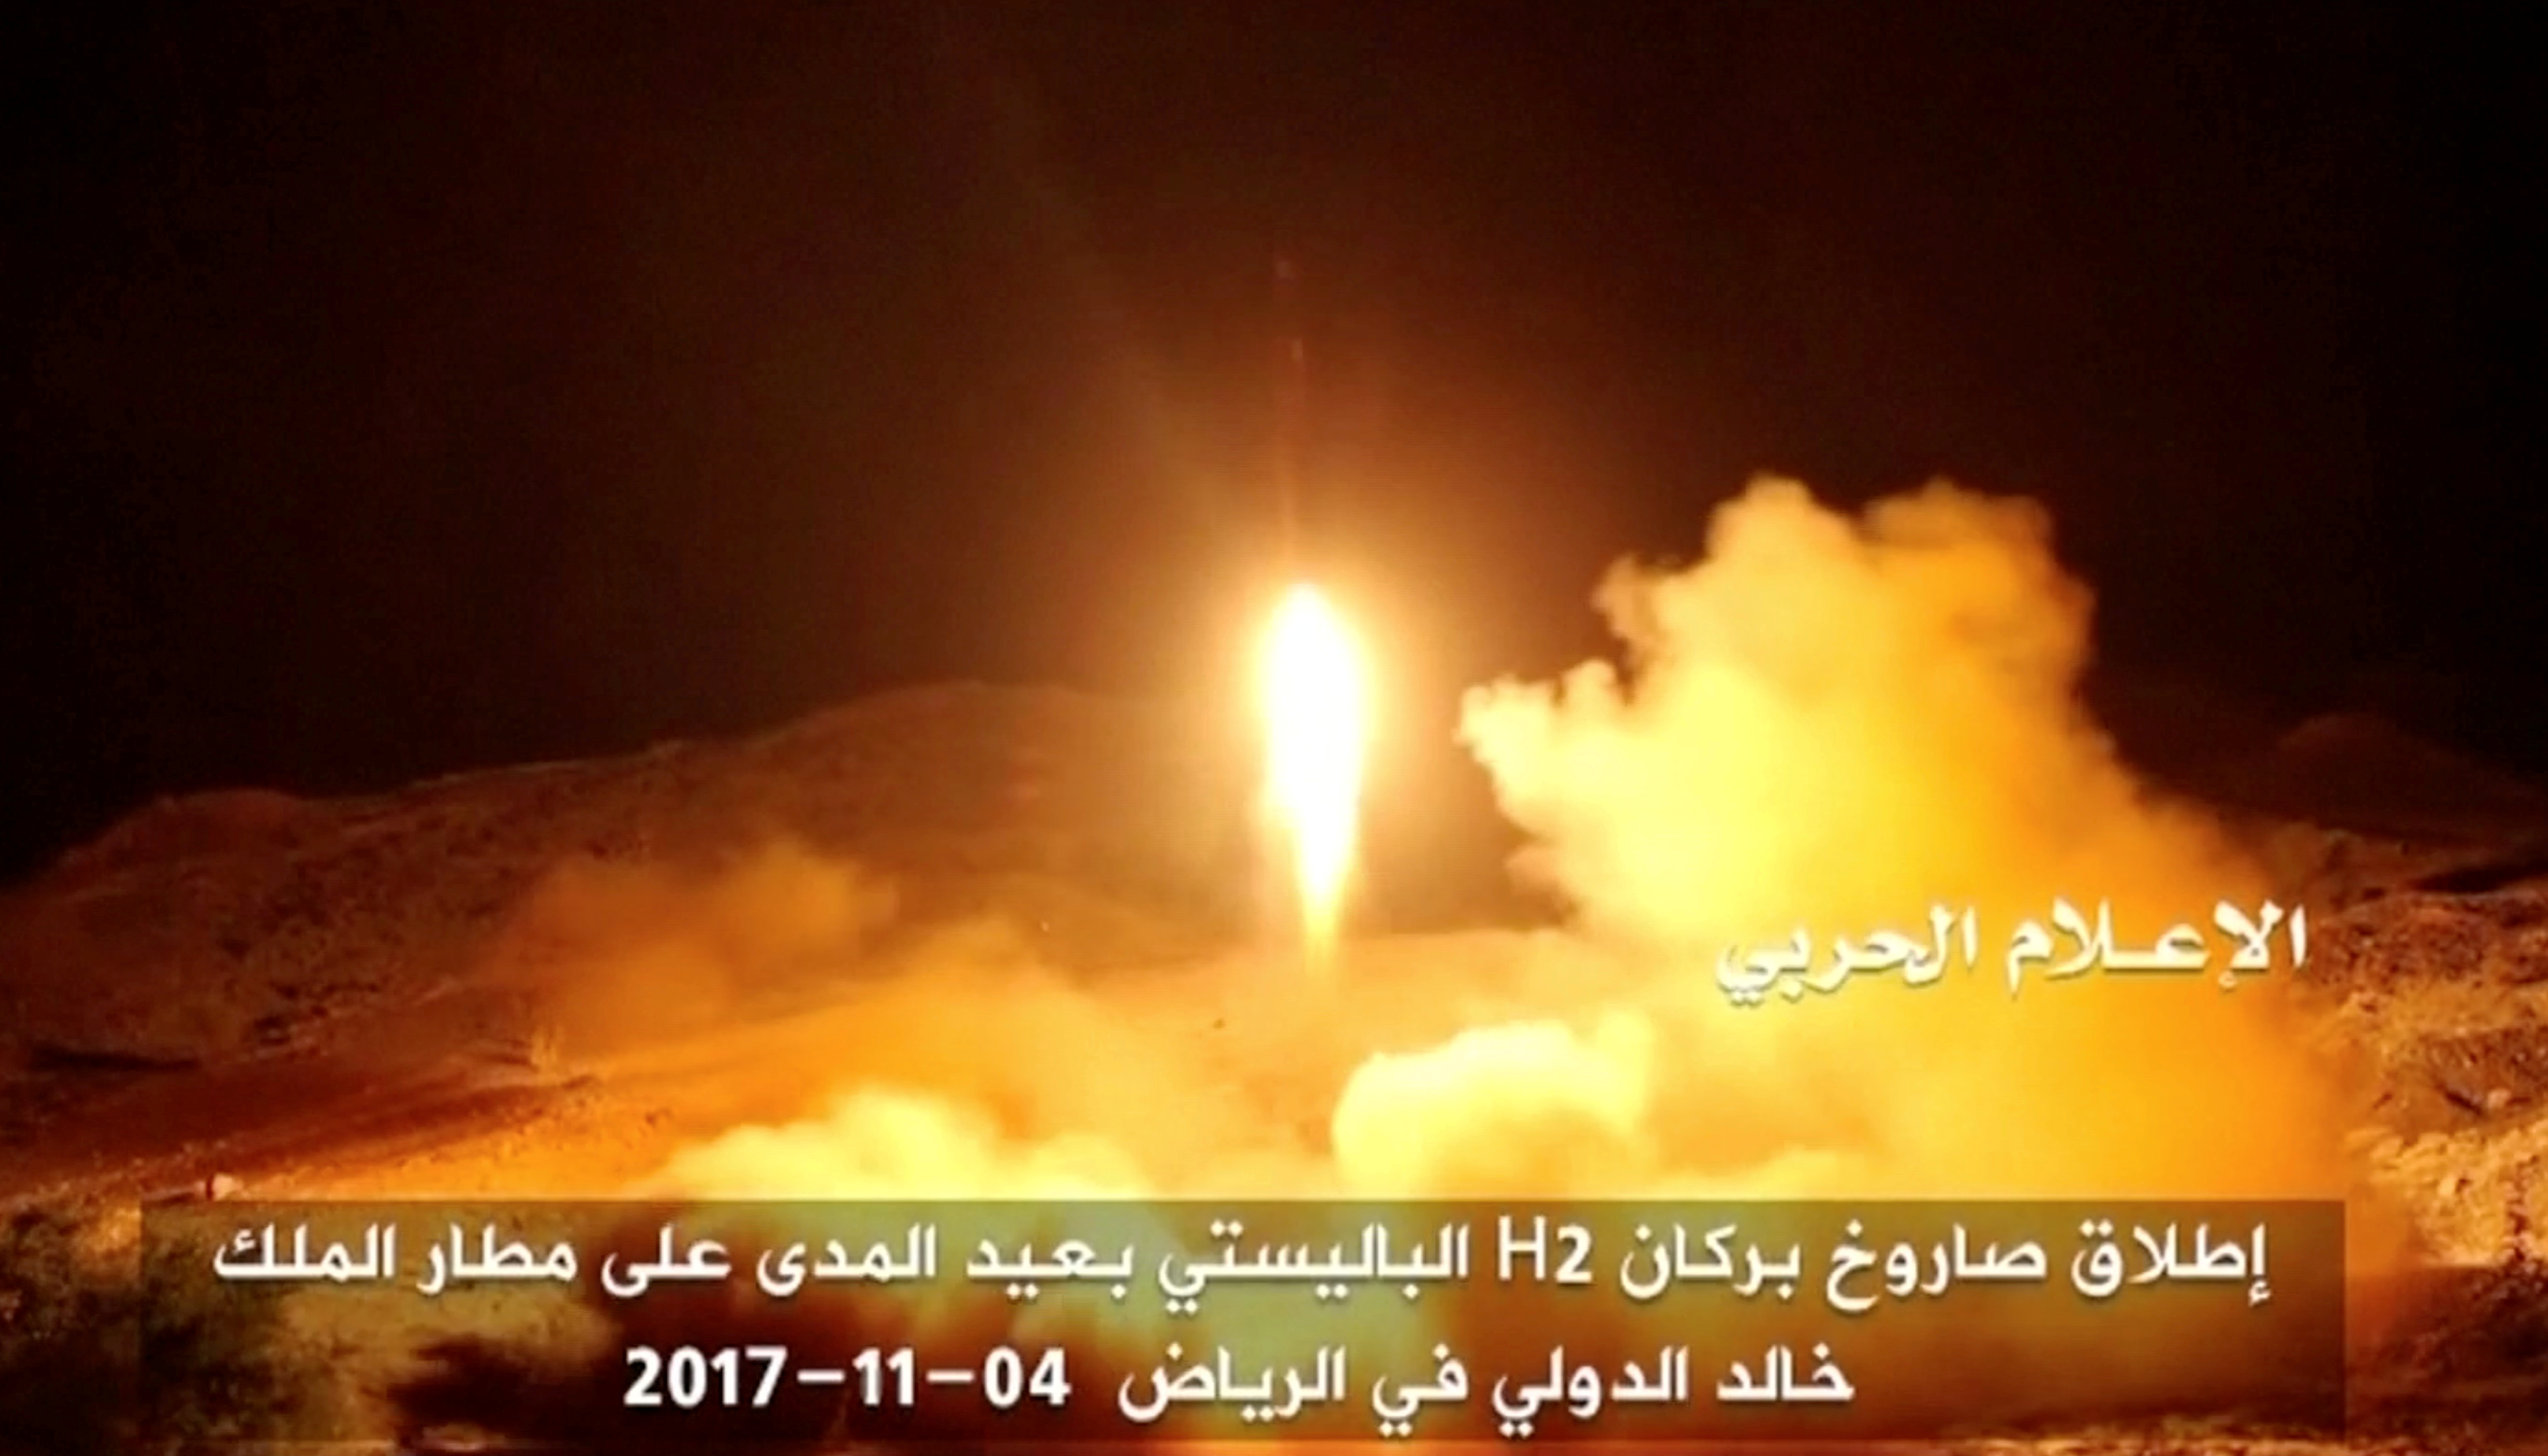 White House condemns missile attacks on Saudi by Yemen's Houthis